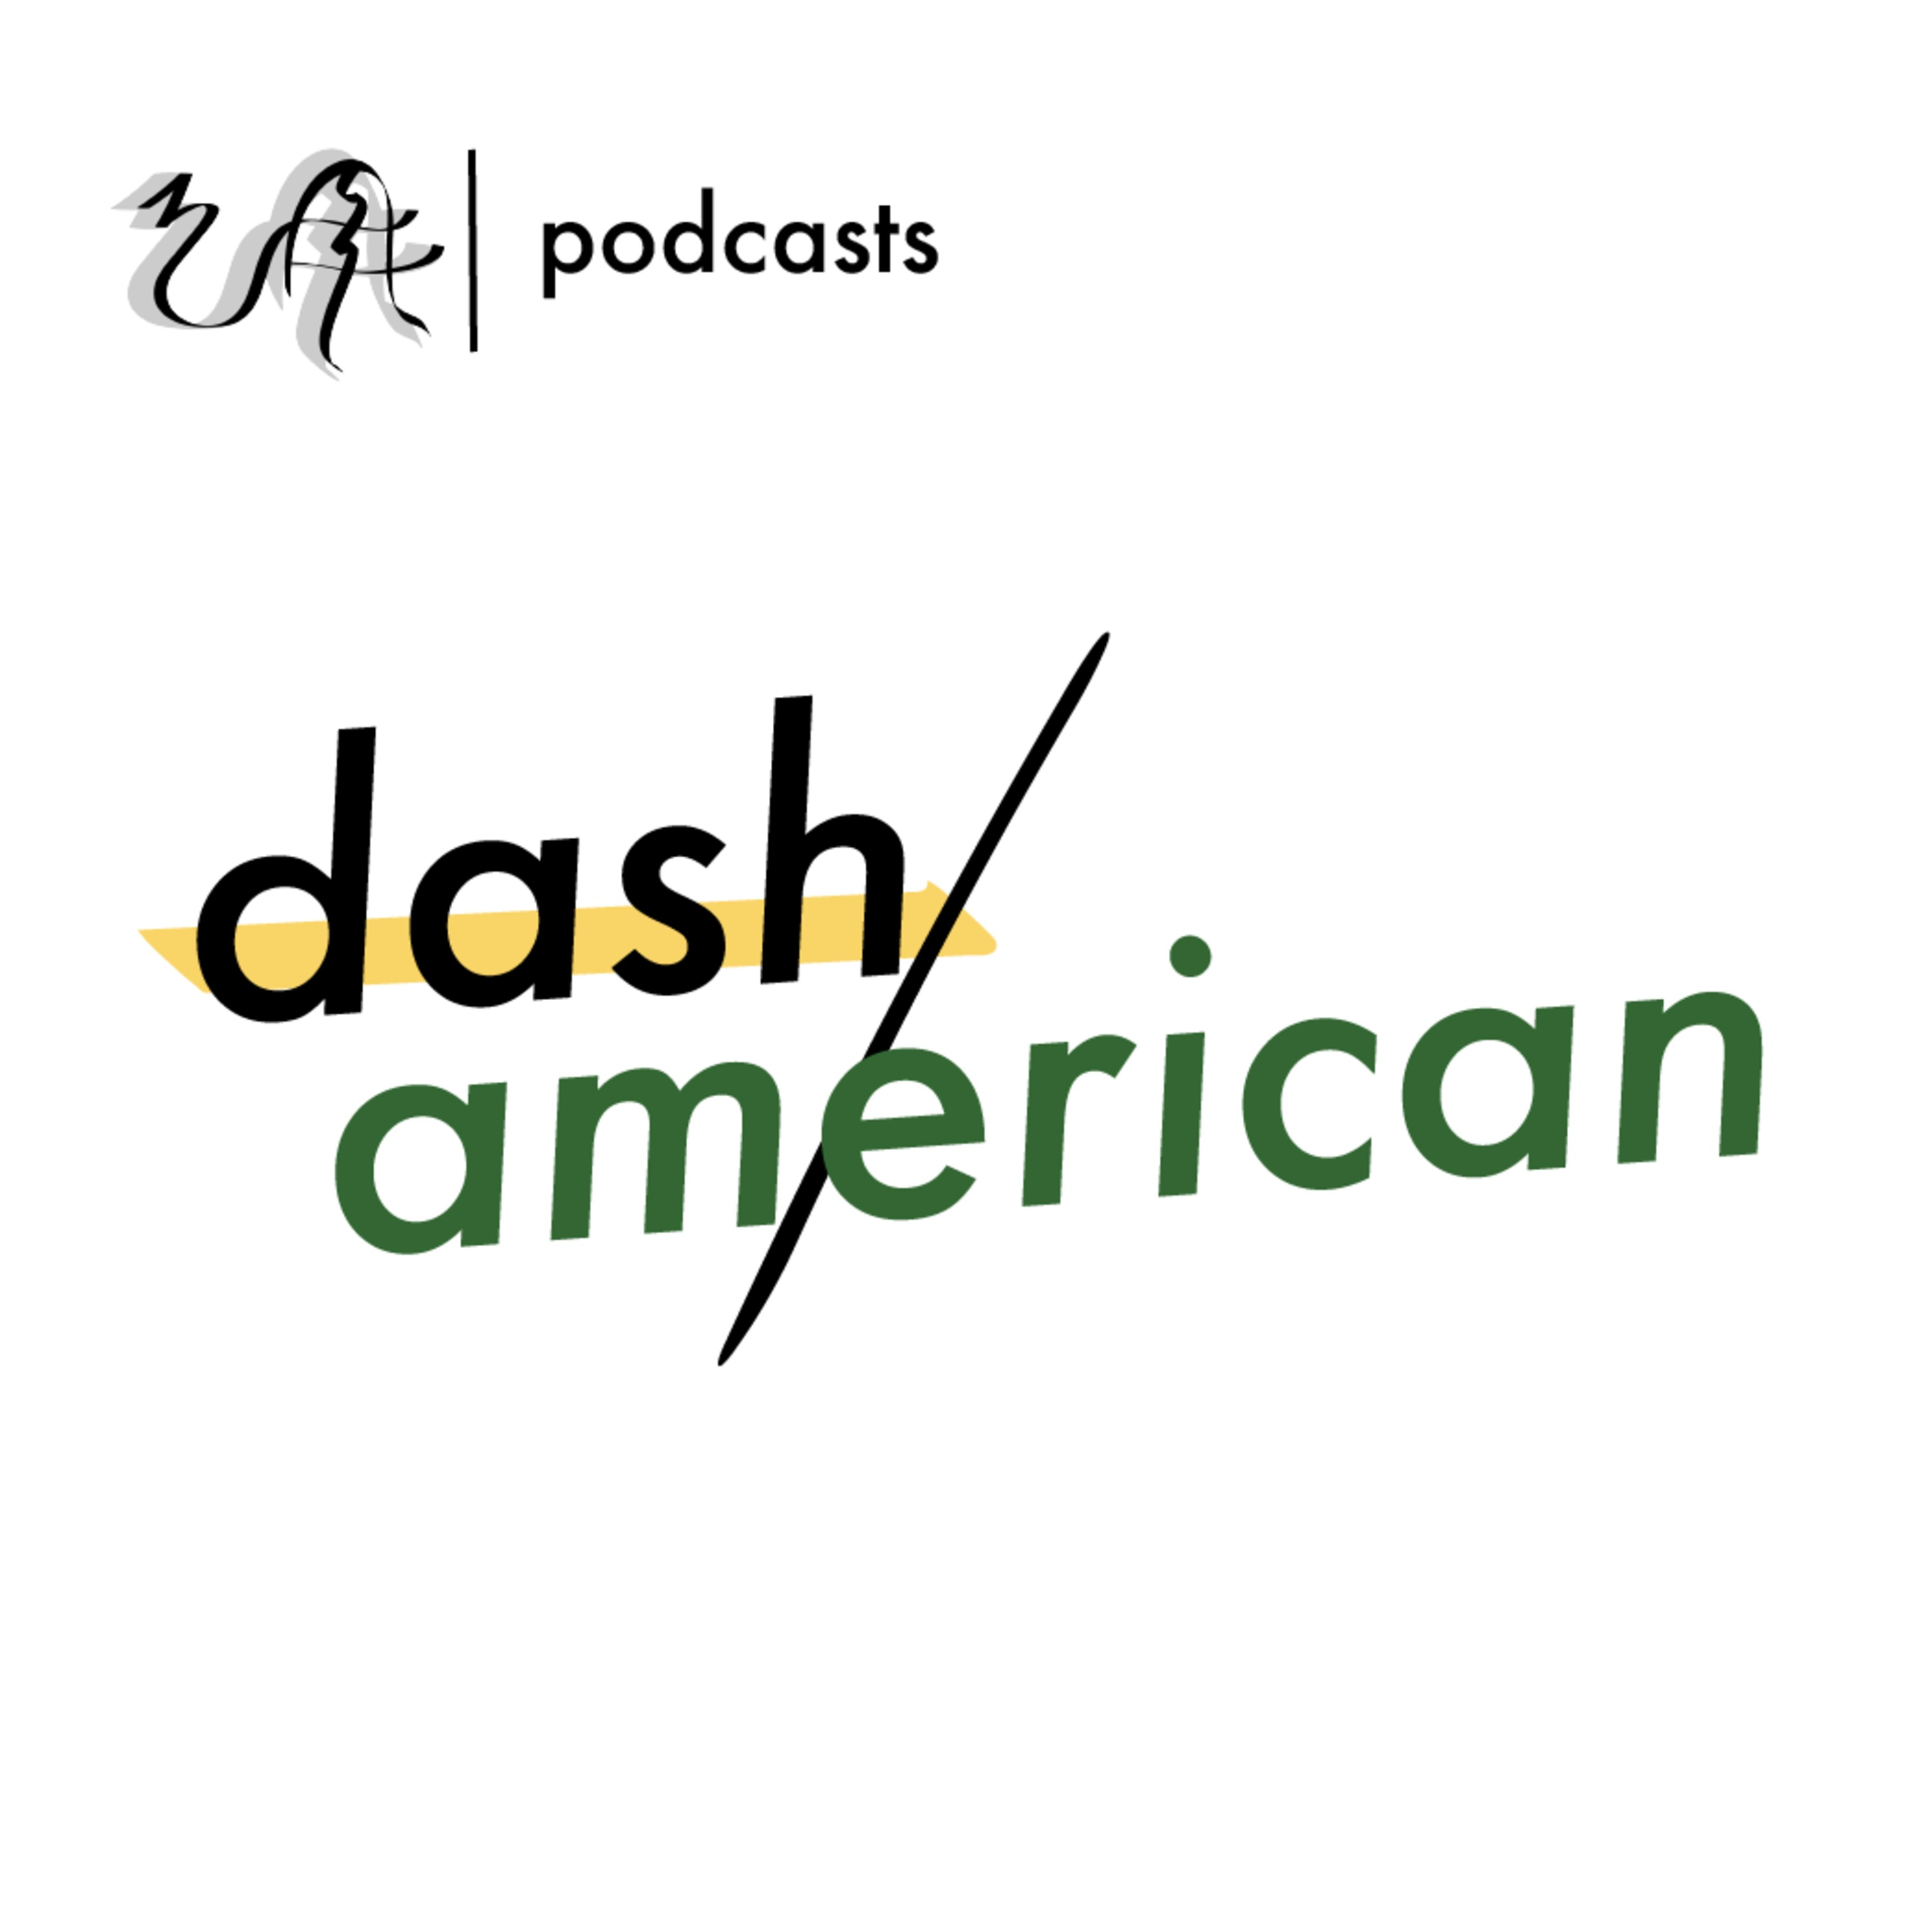 Episode 10: The Gaysian Project